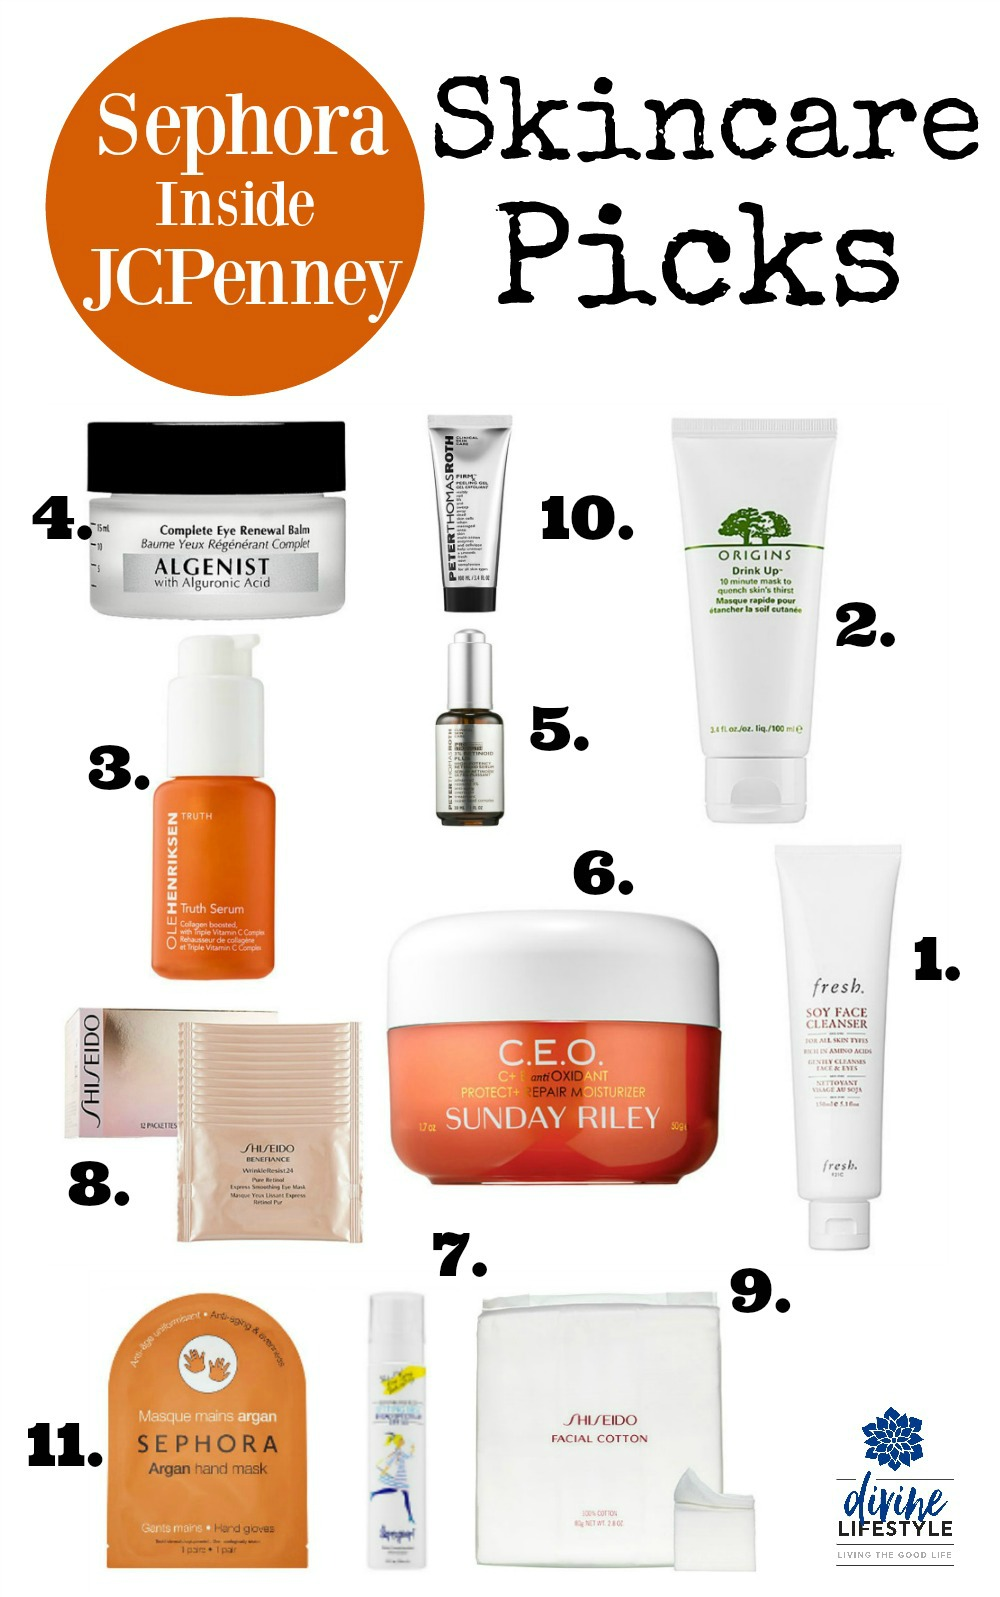 Makeover your skin with Sephora Inside JCPenney #SephorainJCP #SoWorthIt